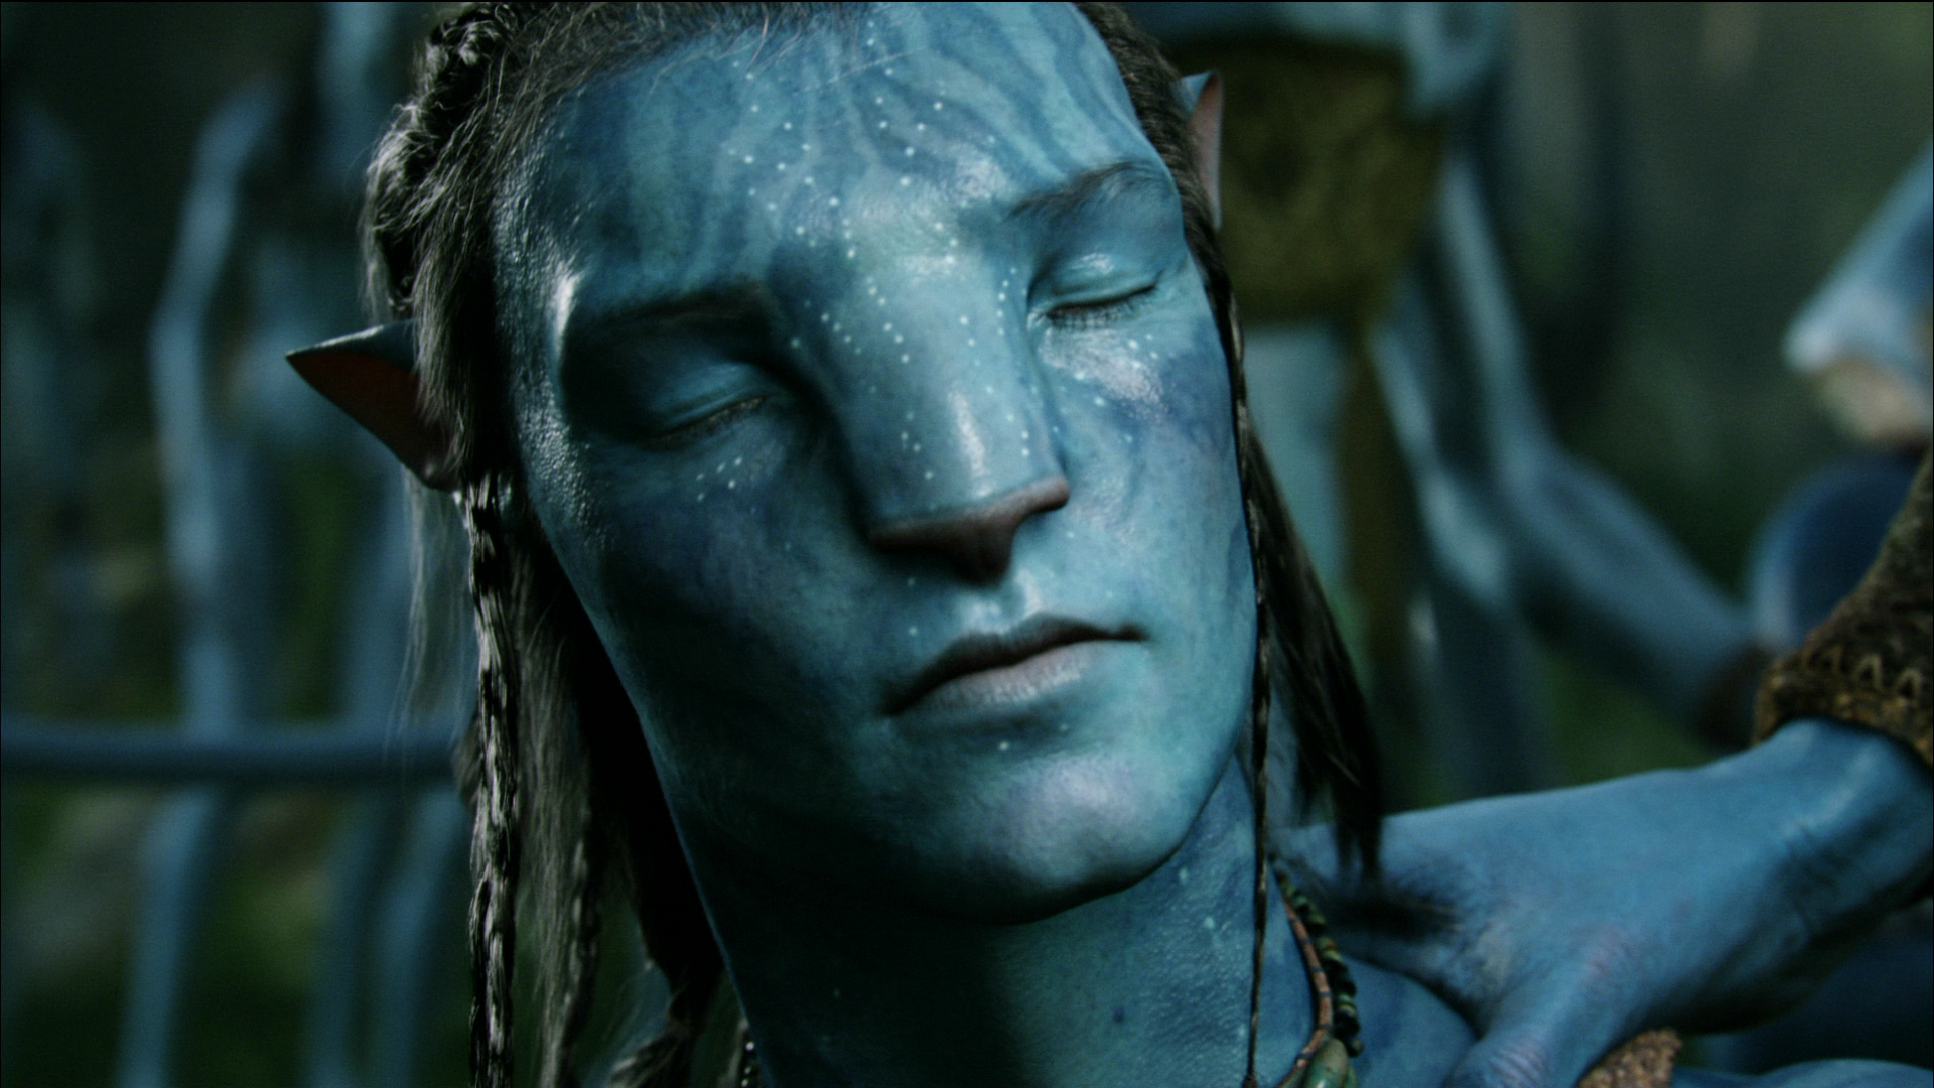 Post Your Hd Pictures Of Jake Sully Page 81 Tree Of Souls An Avatar Community Forum Avatar James Cameron Avatar Avatar Movie